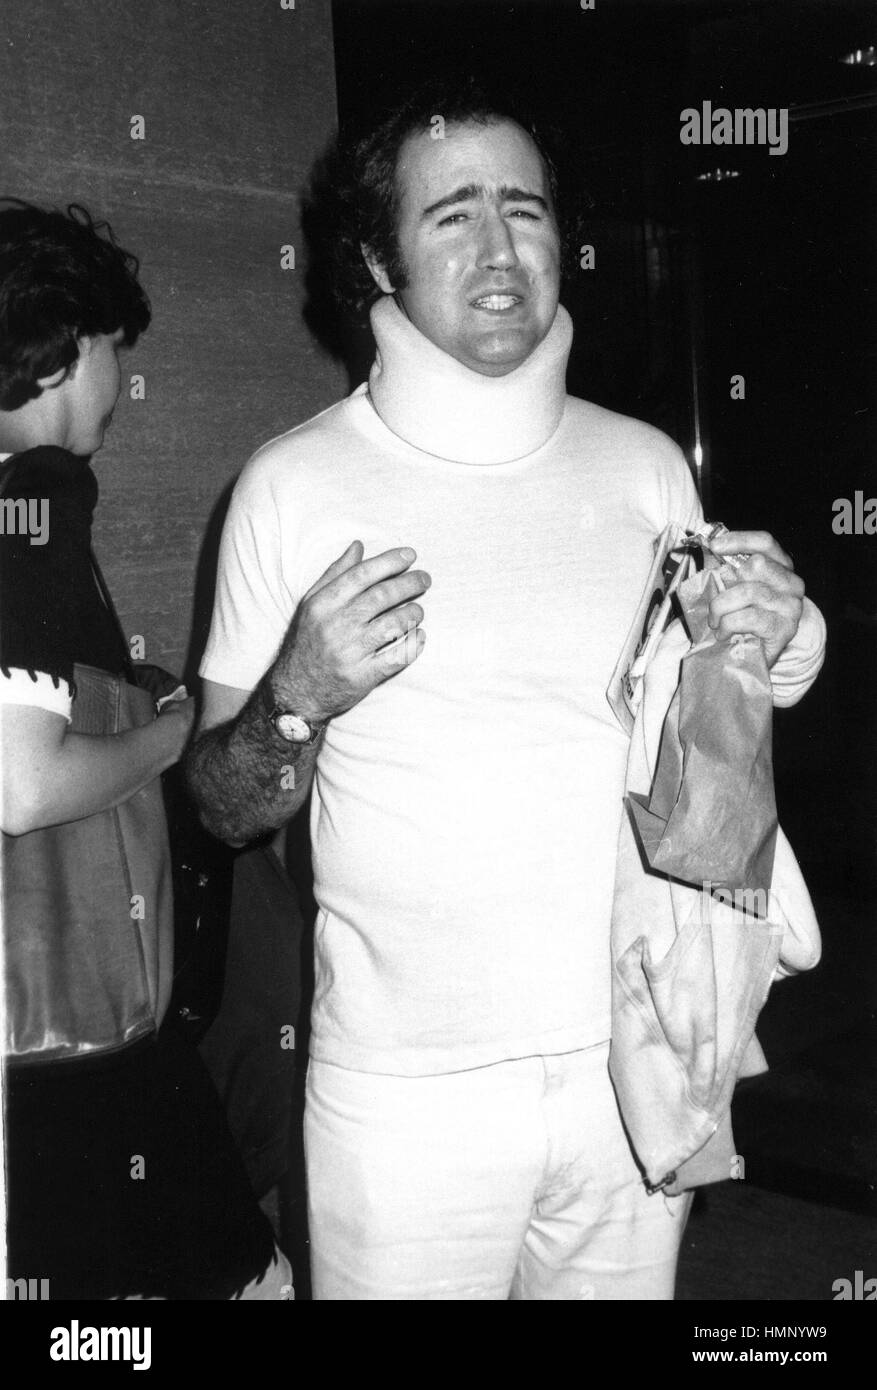 b888683b75d9 ANDY KAUFMAN (MID 1980'S) STAR OF TAXI, HERE WITH A NECK INJURY AFTER